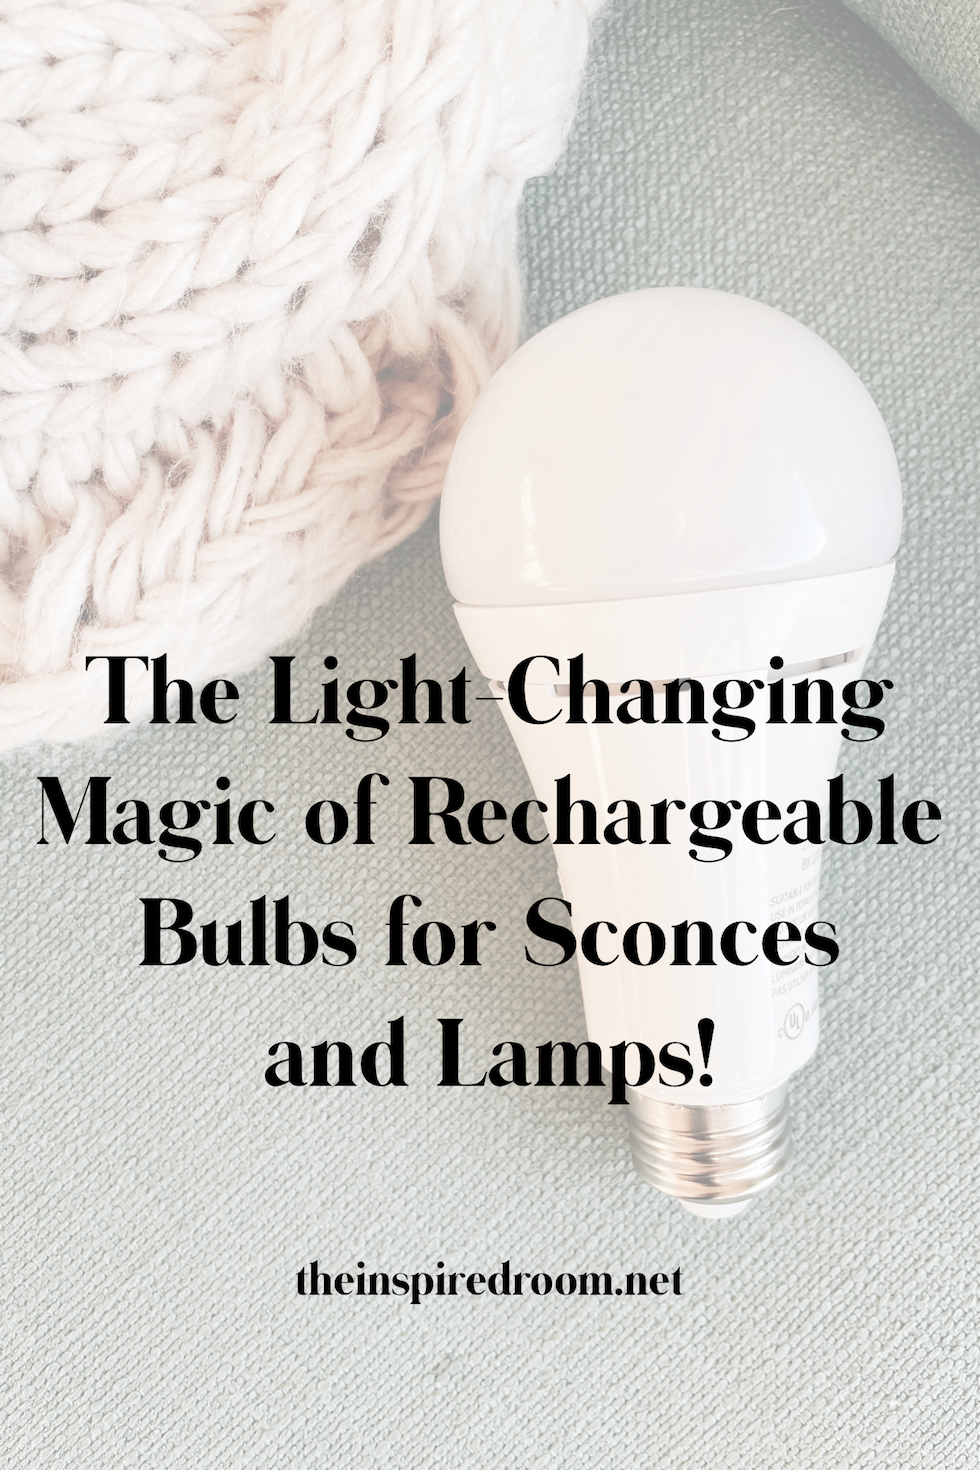 The Light-Changing Magic of Rechargeable Bulbs for Sconces + Lamps!